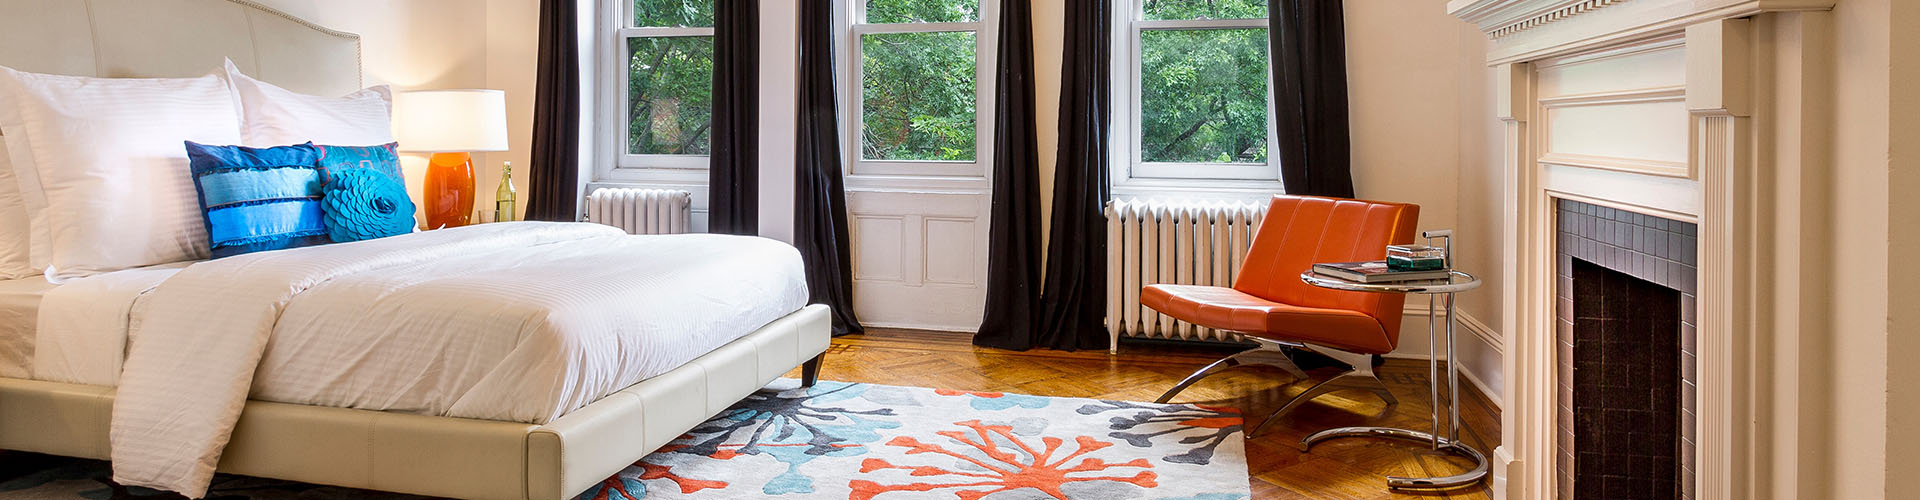 Renting in New York: Tips for Renters Moving from Out of State